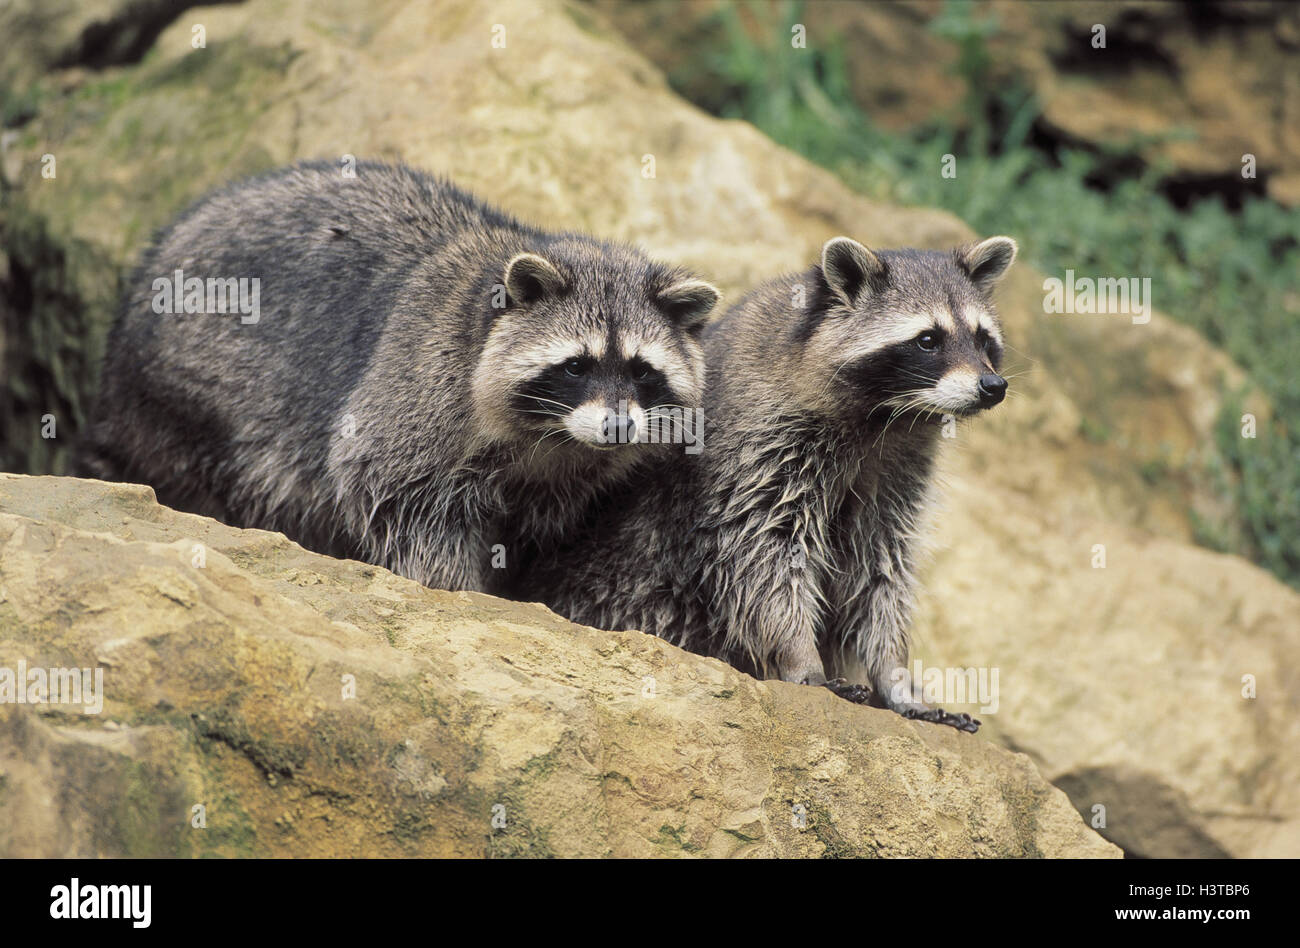 small wild animals wallpapers - photo #36